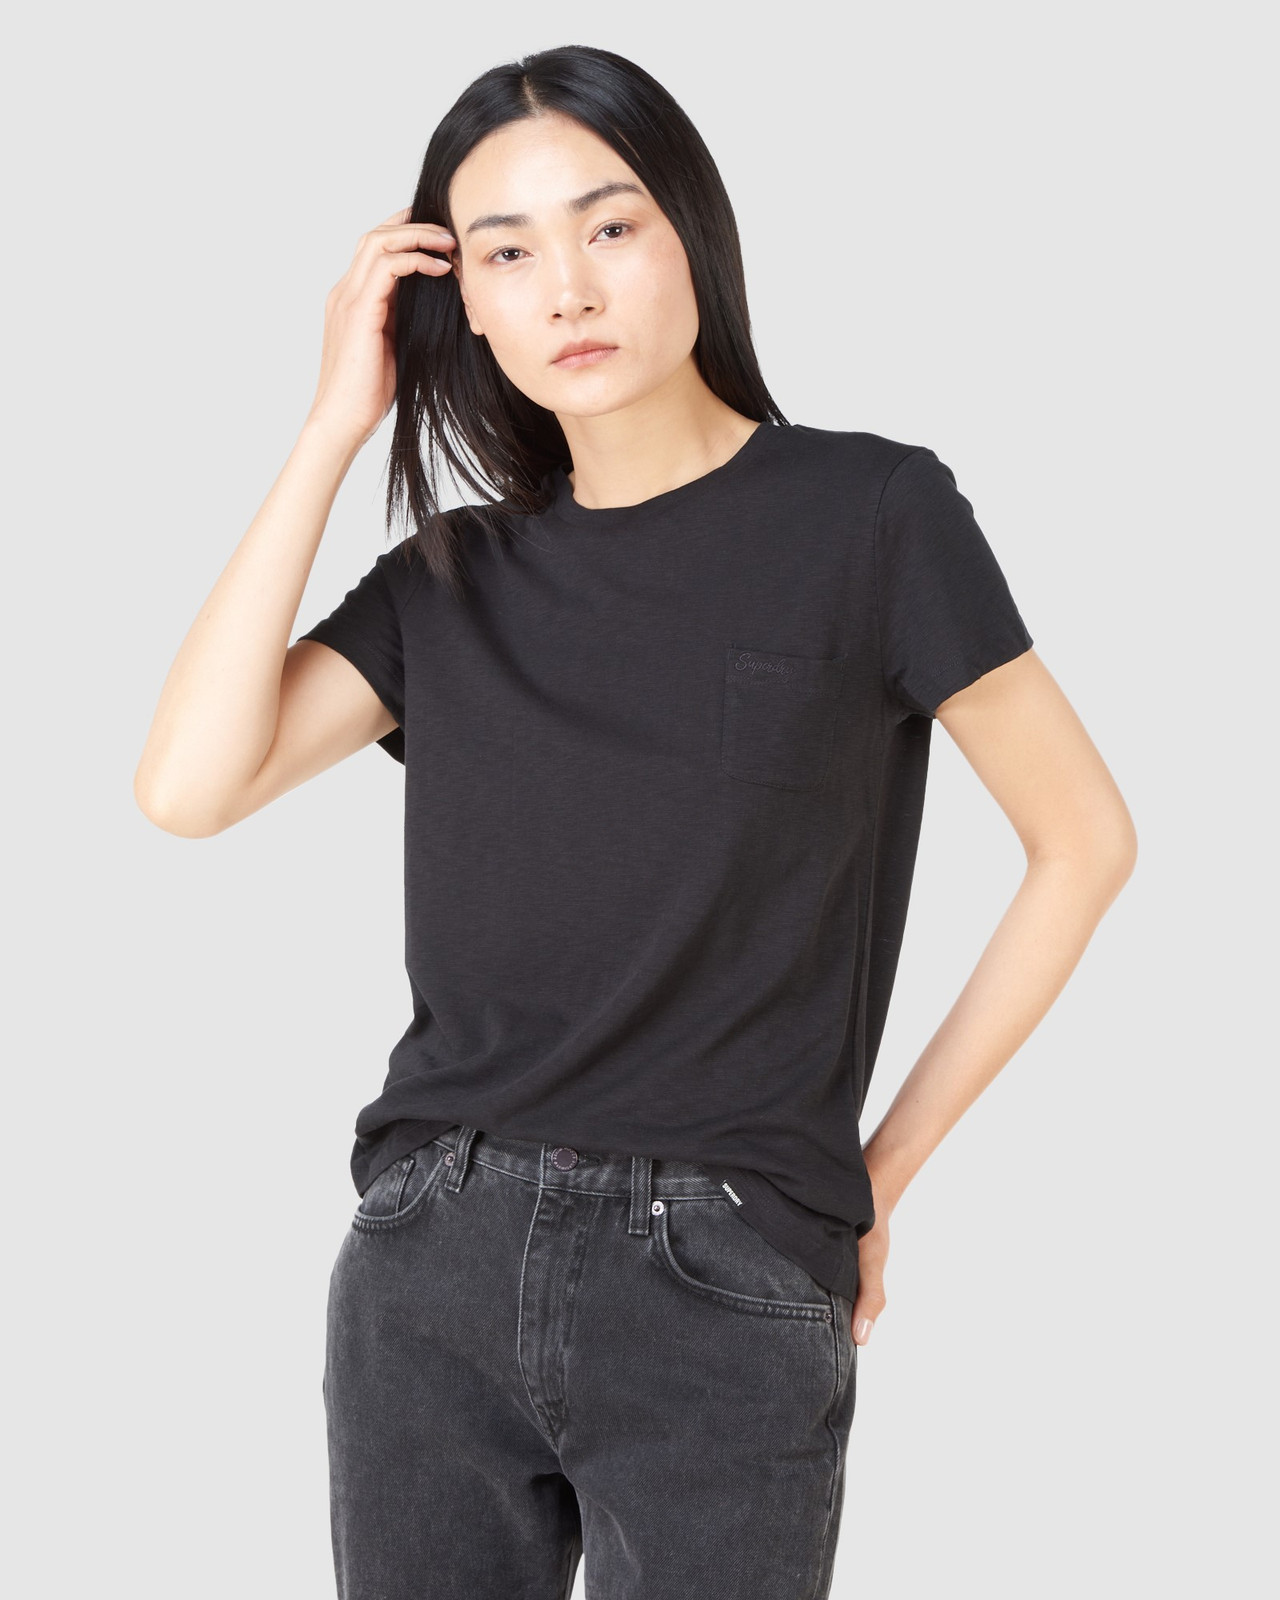 Superdry Womens SCRIPTED CREW TEE Black Plain T Shirts 0